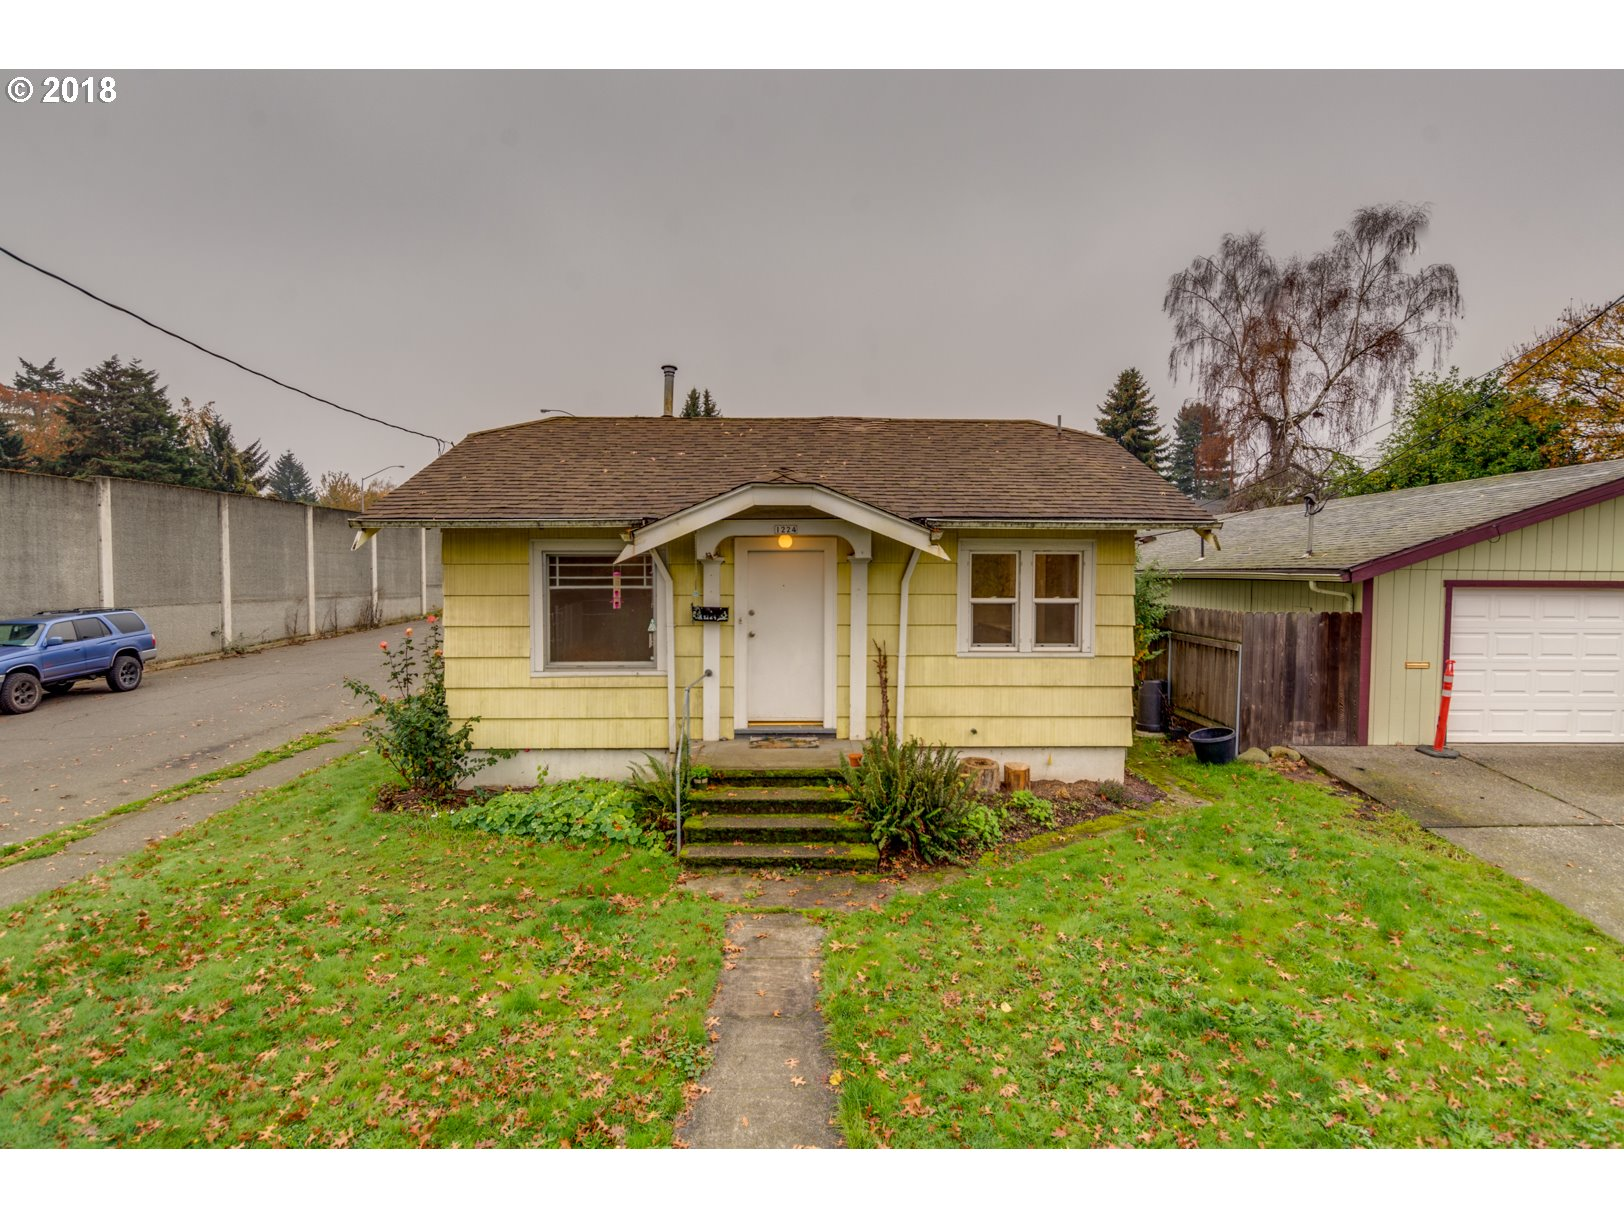 898 sq. ft 1 bedrooms 1 bathrooms  House For Sale,Portland, OR